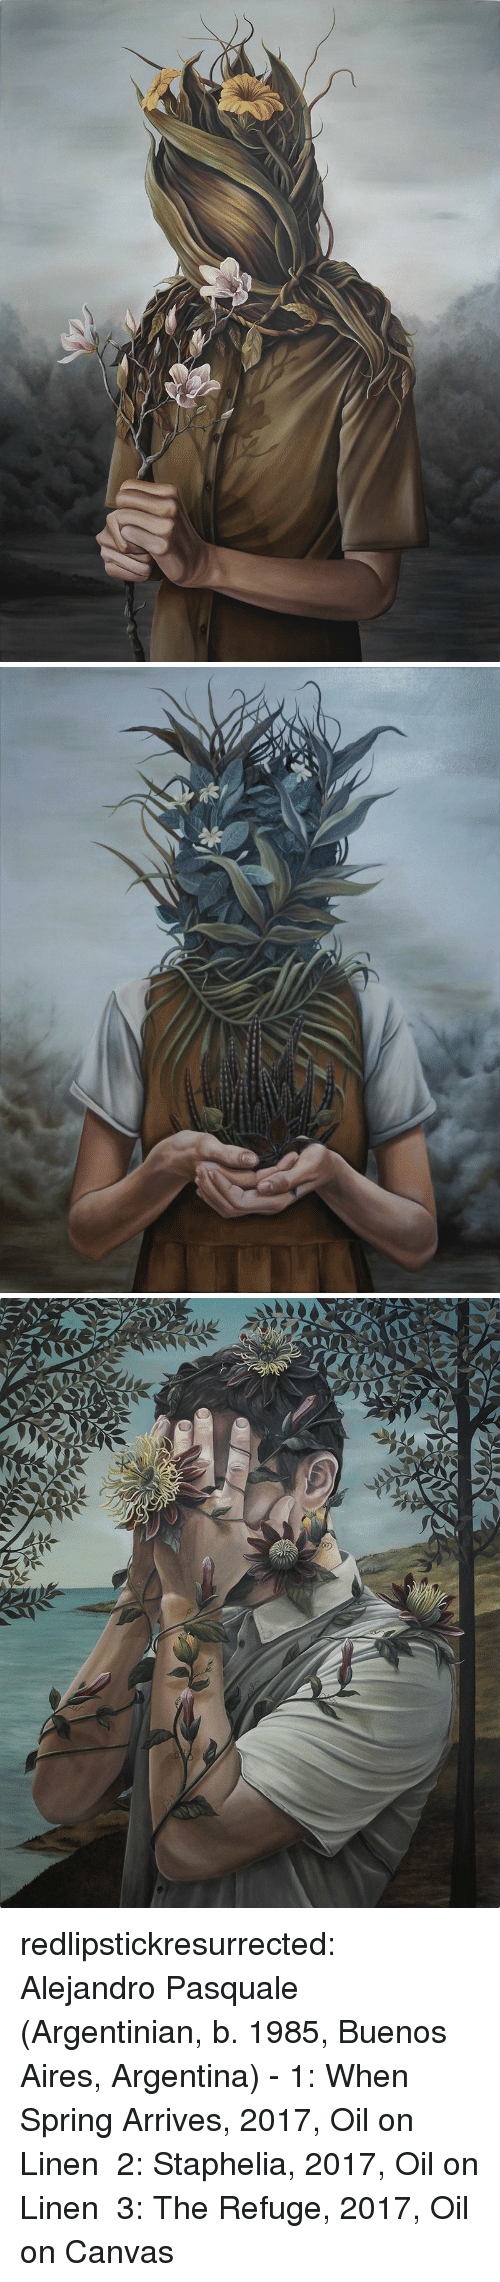 aires: redlipstickresurrected:  Alejandro Pasquale (Argentinian, b. 1985, Buenos Aires, Argentina) - 1: When Spring Arrives, 2017, Oil on Linen  2: Staphelia, 2017, Oil on Linen  3: The Refuge, 2017, Oil on Canvas